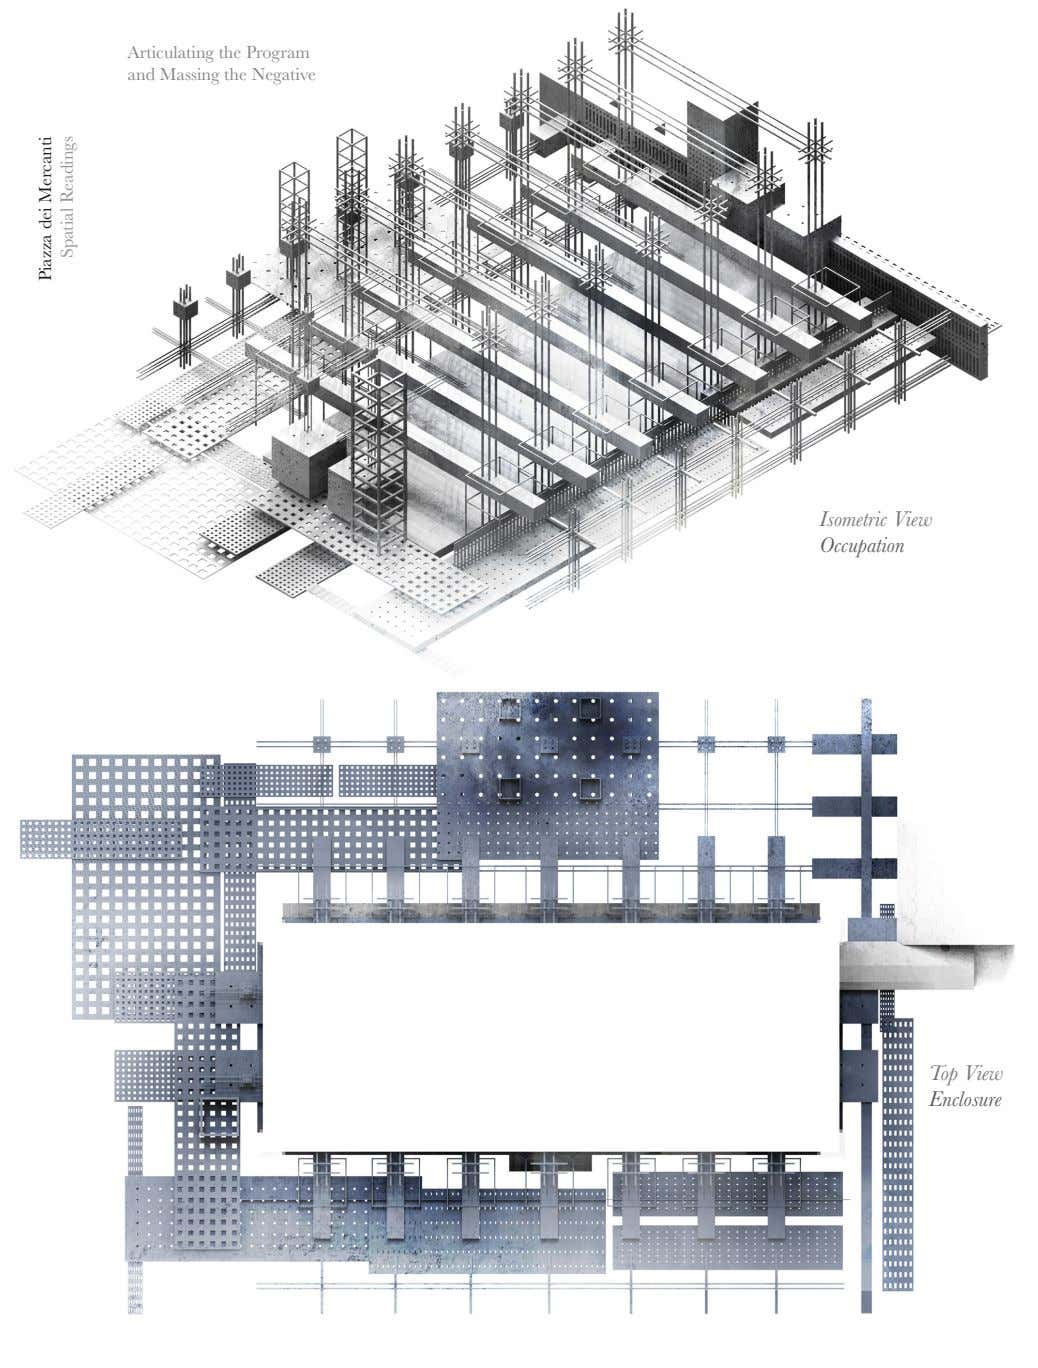 Articulating the Program and Massing the Negative Isometric View Occupation Top View Enclosure Piazza dei